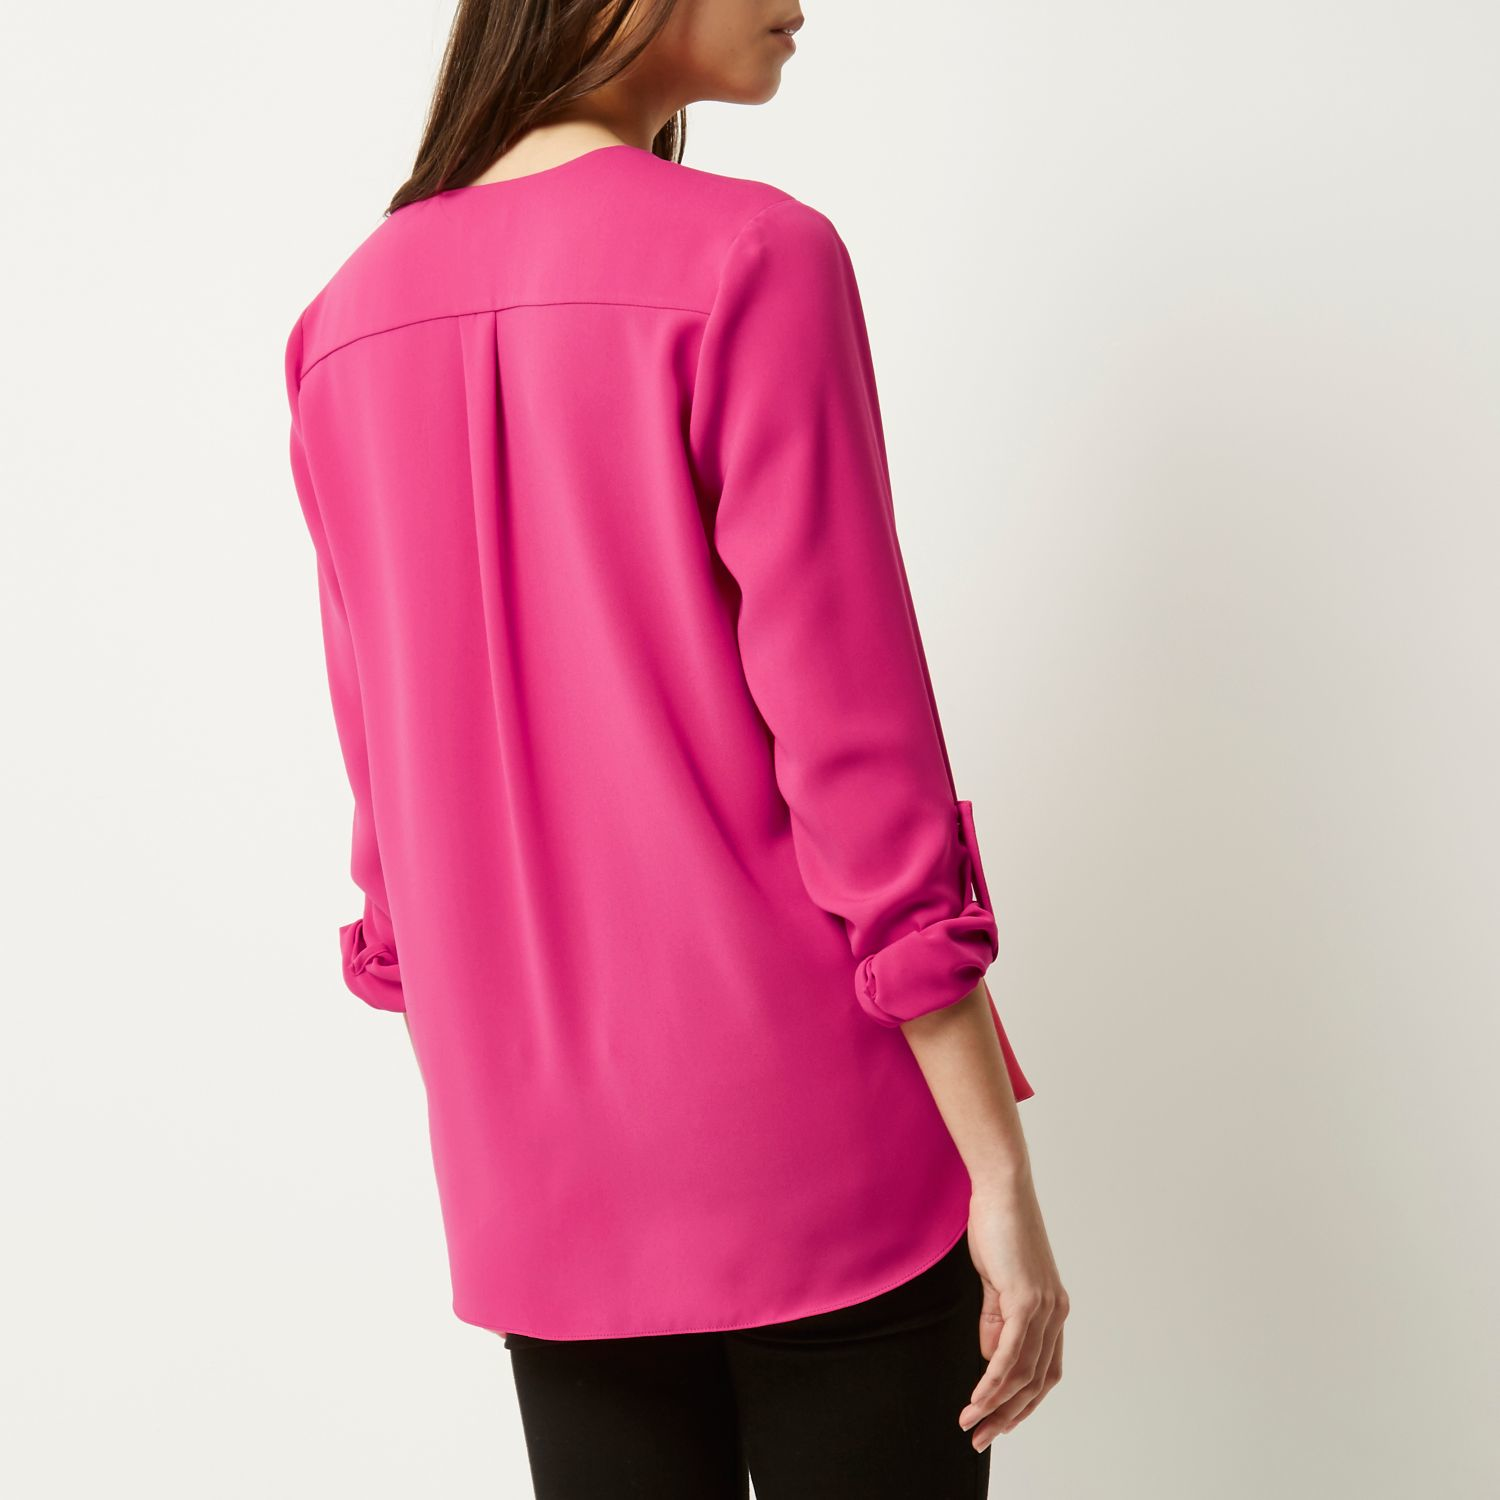 Victoria Beckham See Trou Blouse 72